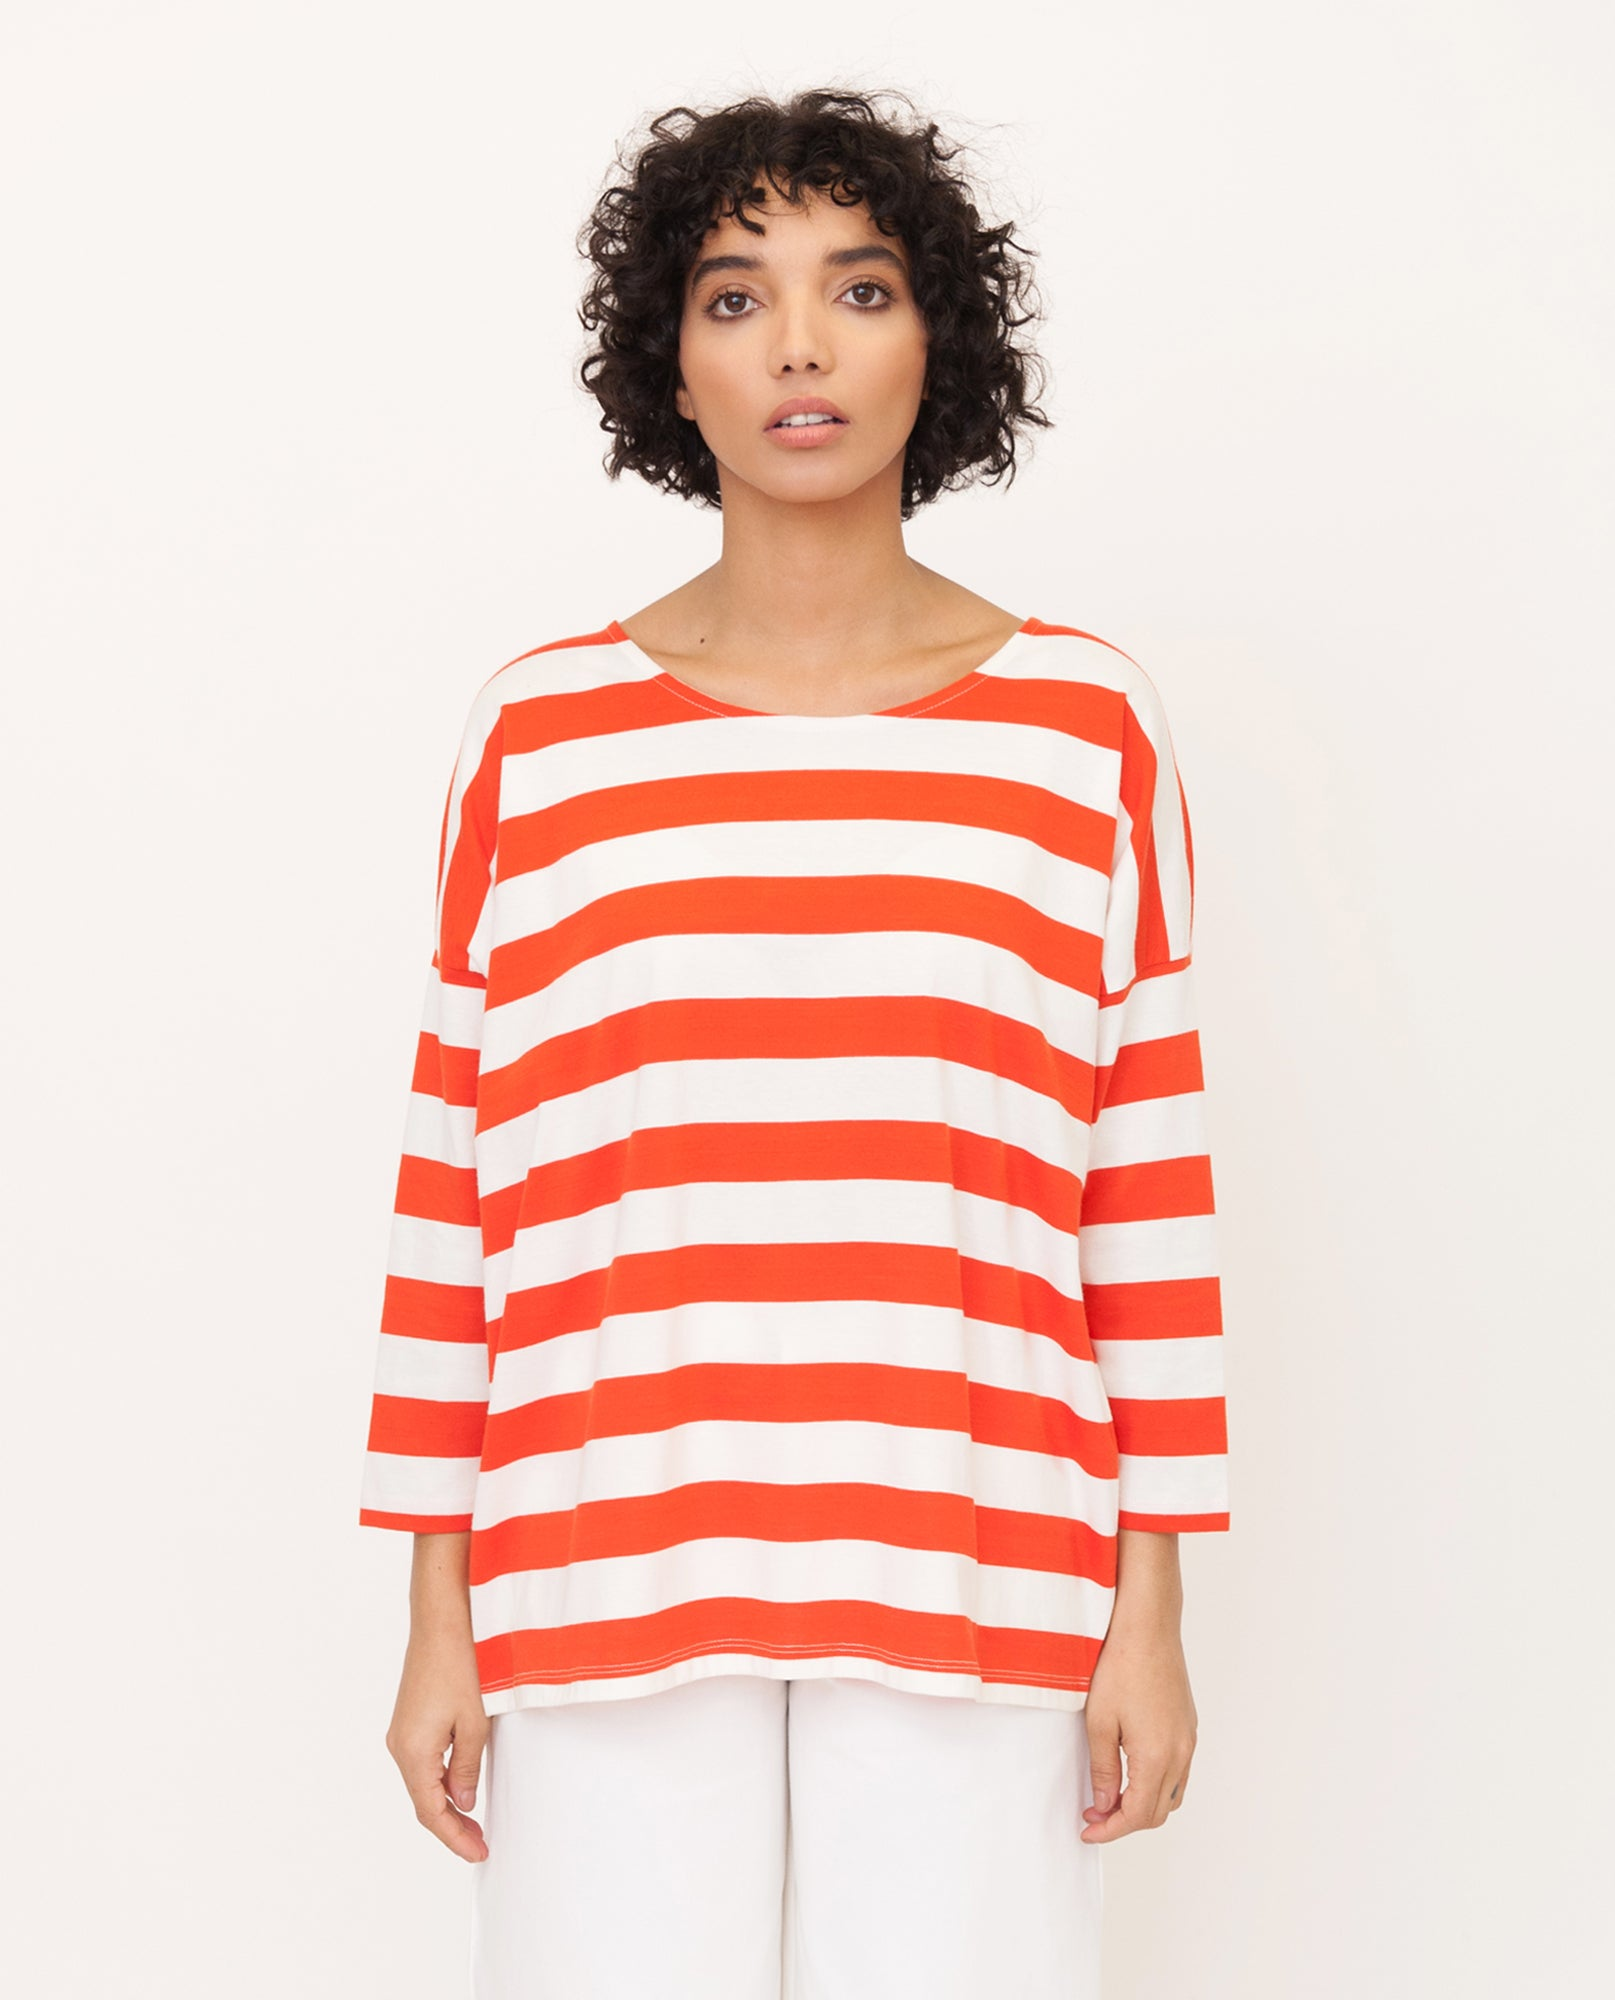 ROSIE Organic Cotton Top In Red And Cream from Beaumont Organic